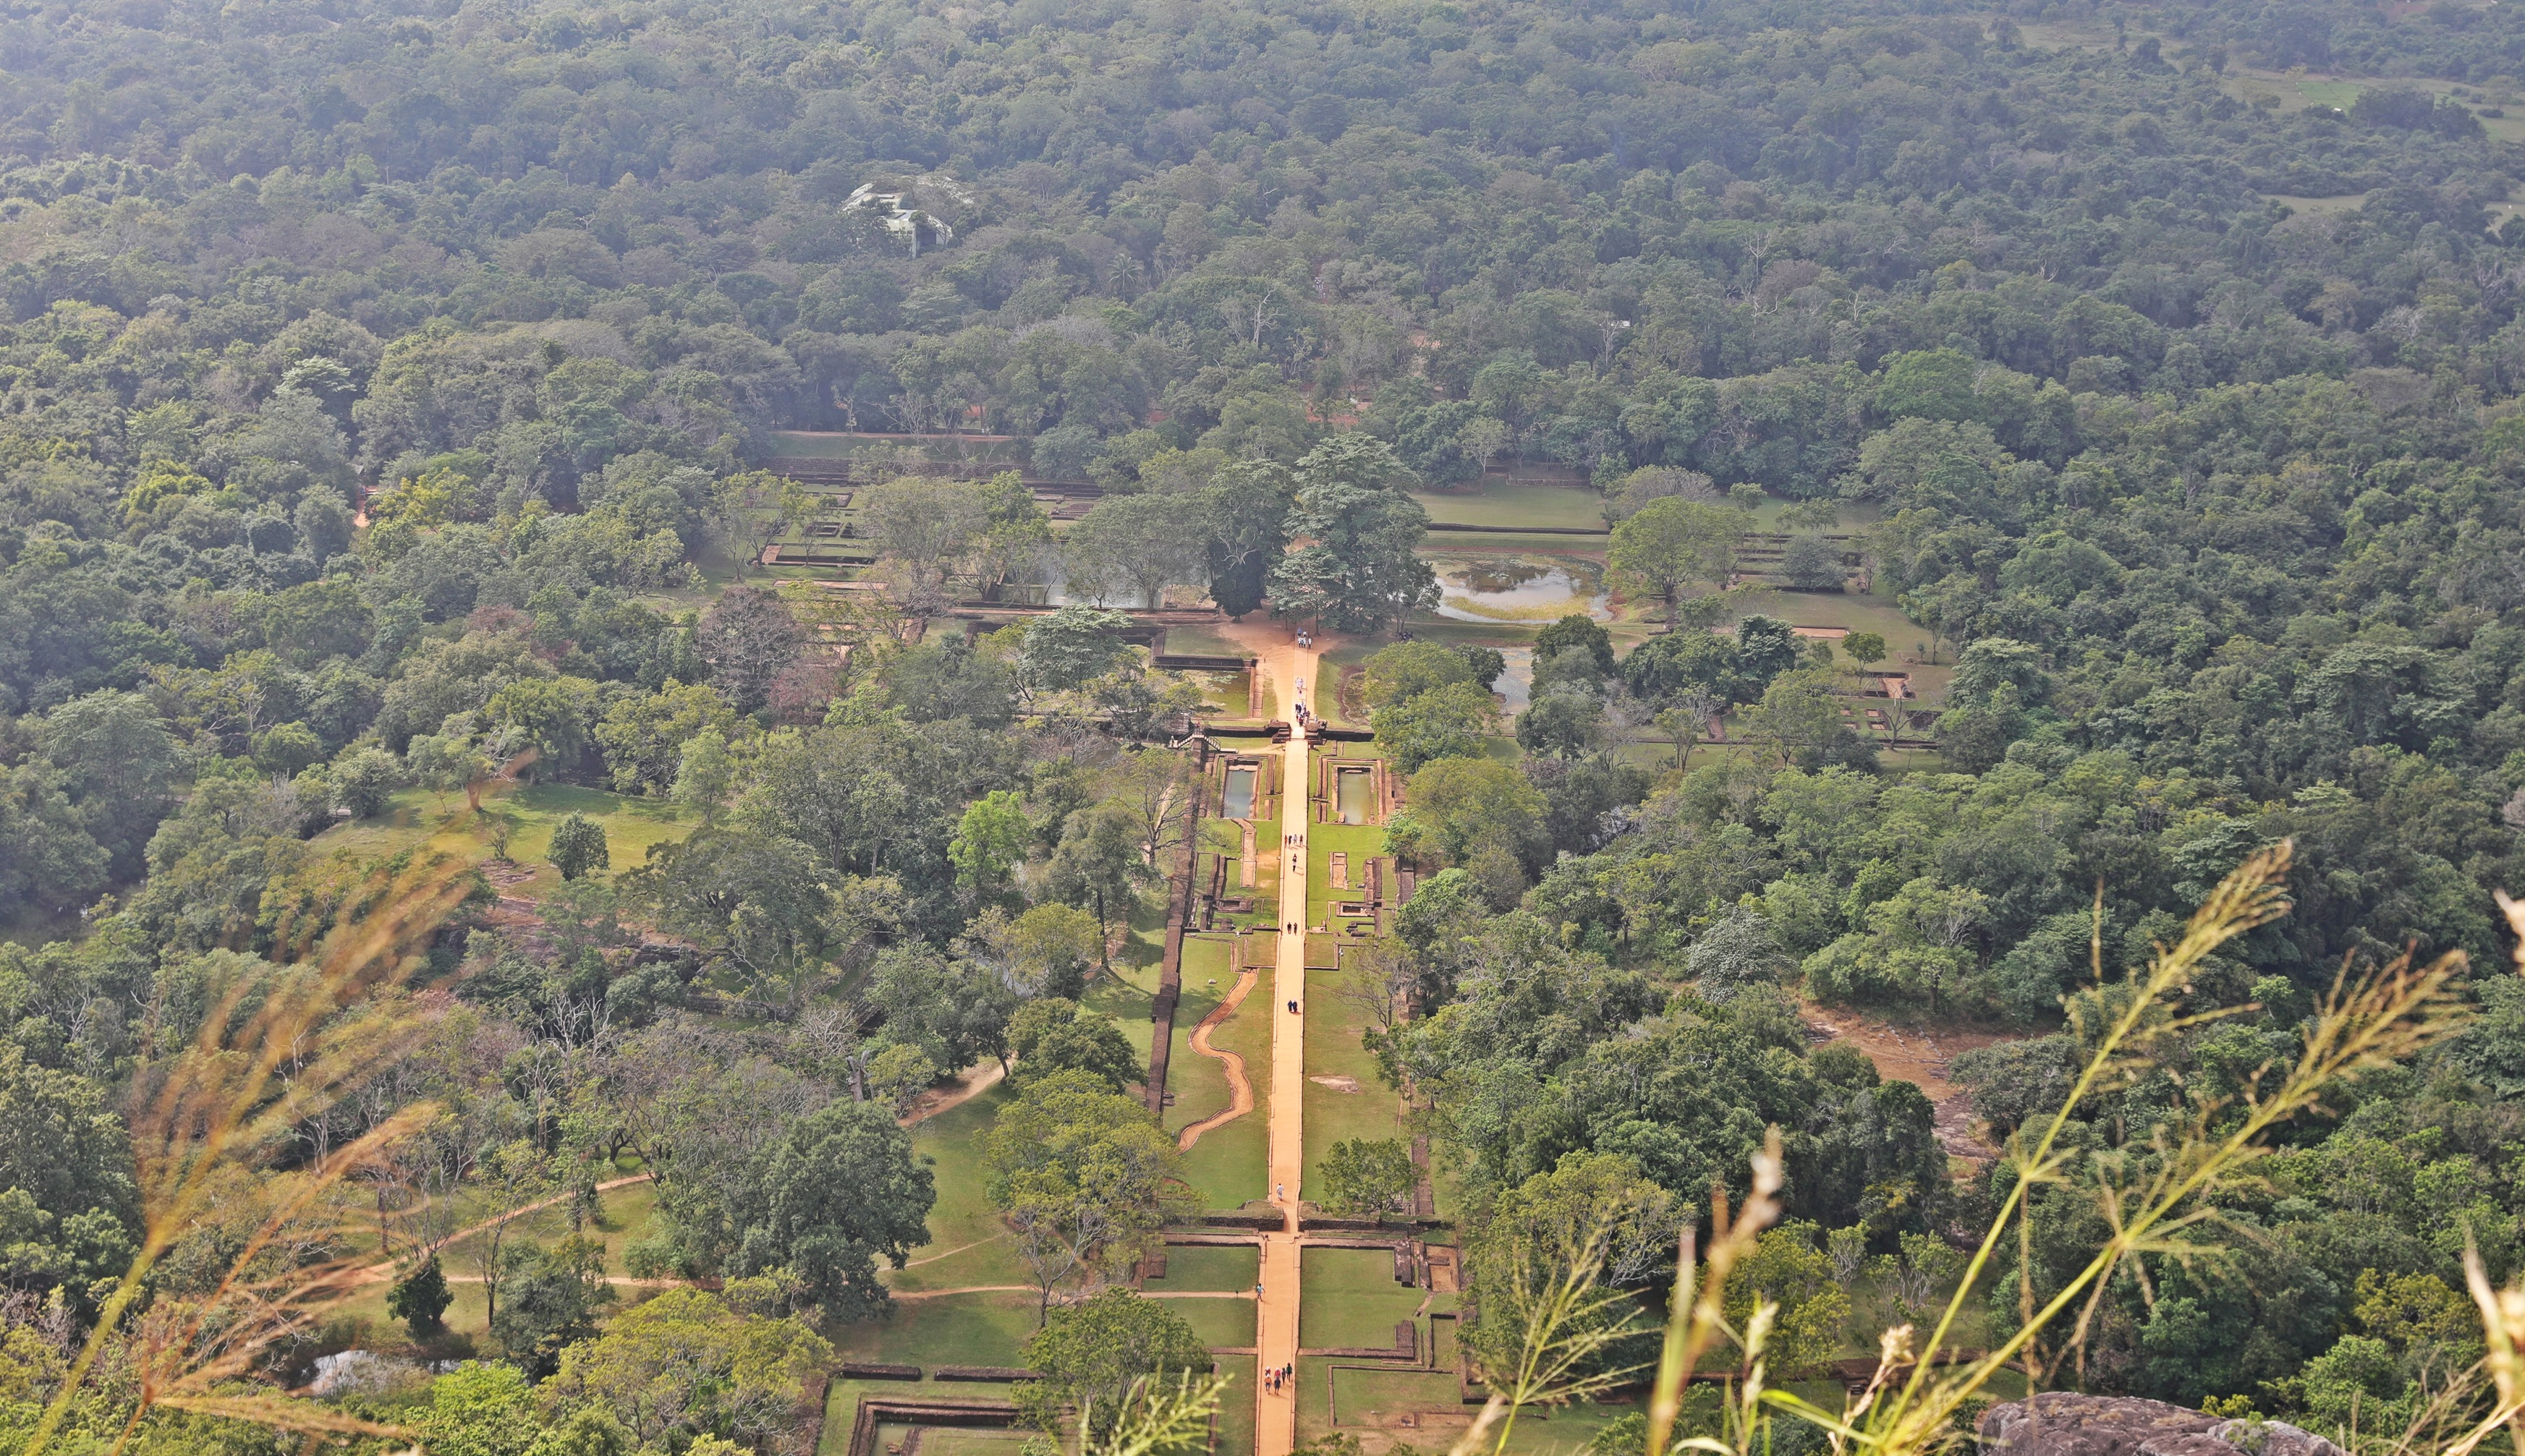 View of the Water Gardens from Sigiriya Rock summit